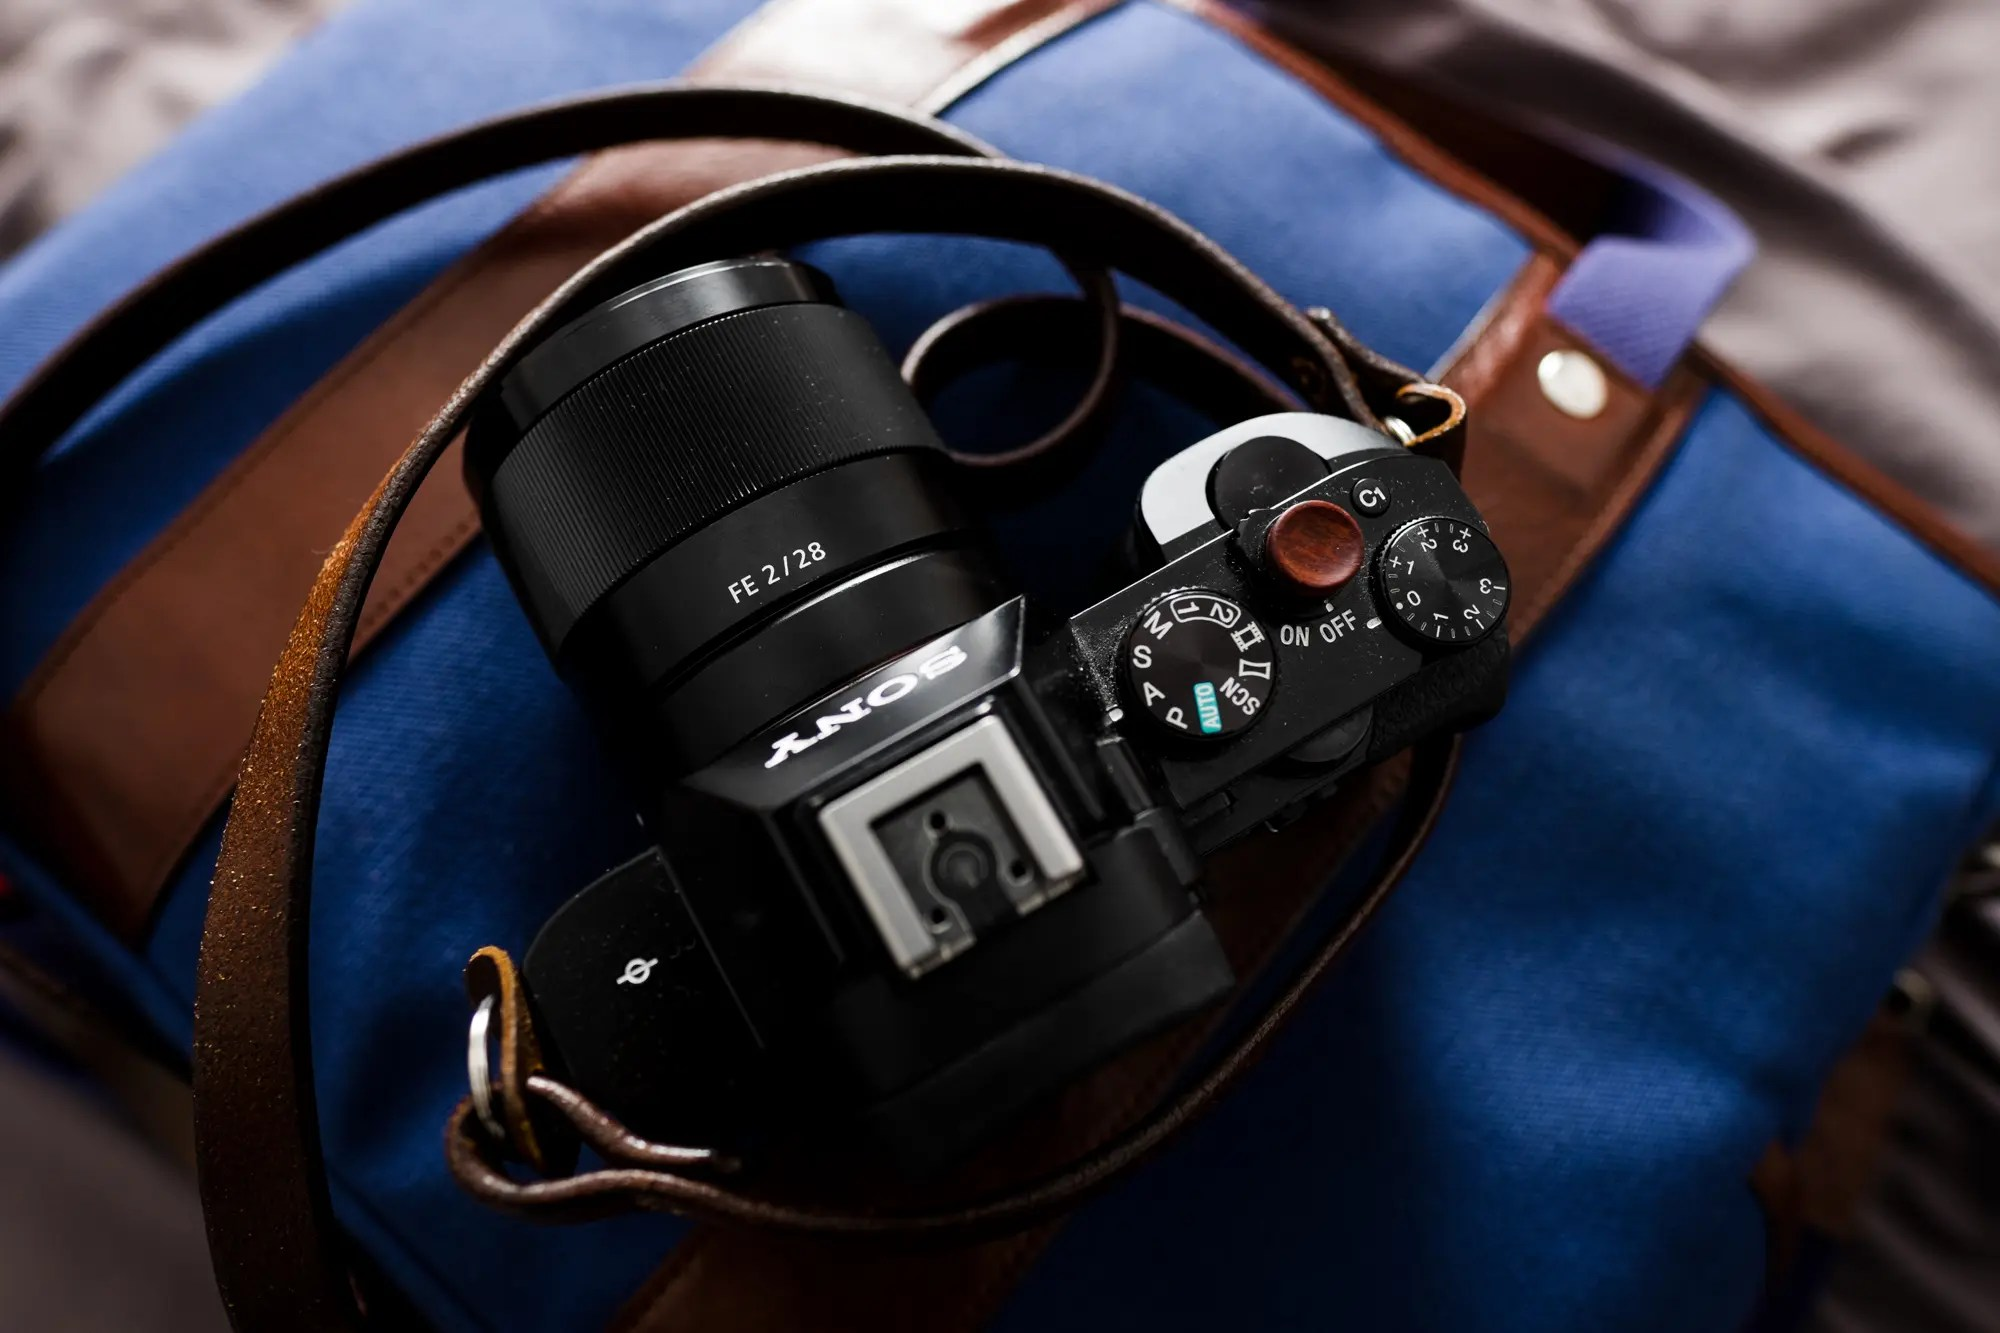 Chris Gampat The Phoblographer Sony 28mm f2 lens review product photos (4 of 7)ISO 4001-125 sec at f - 2.8